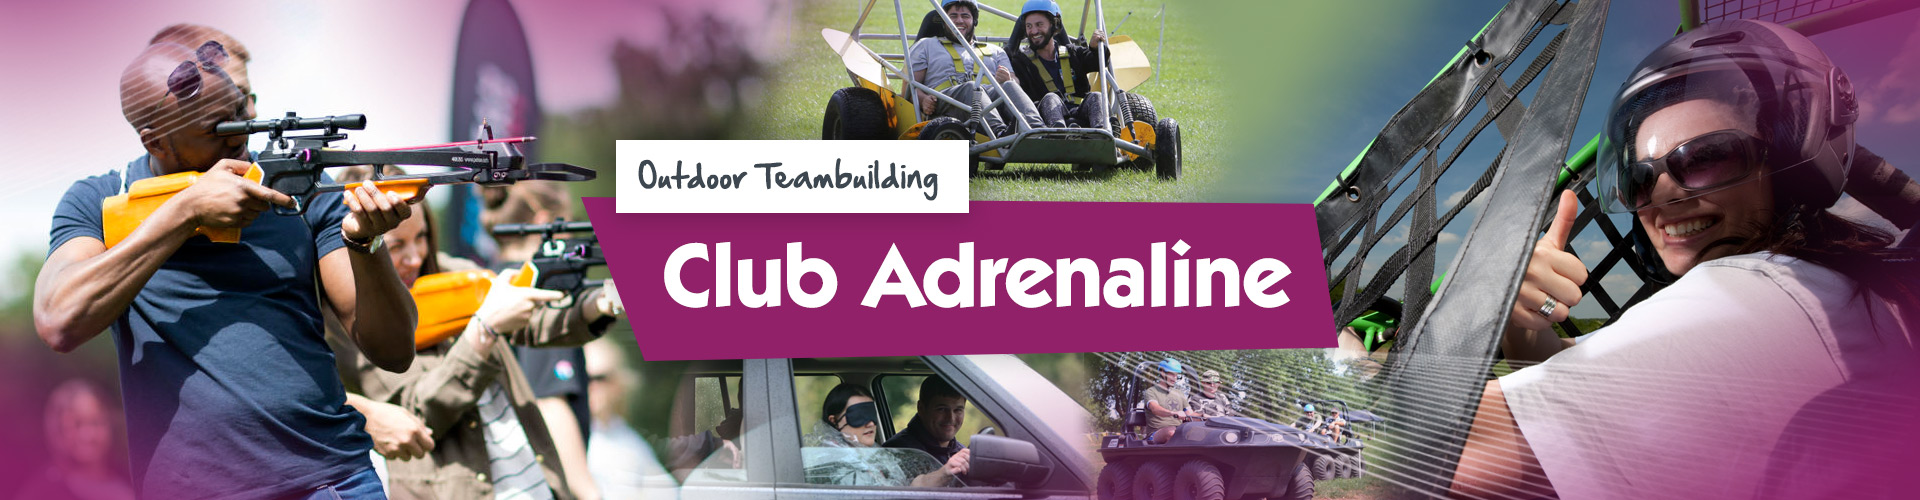 Teambuilding | Club Adrenaline